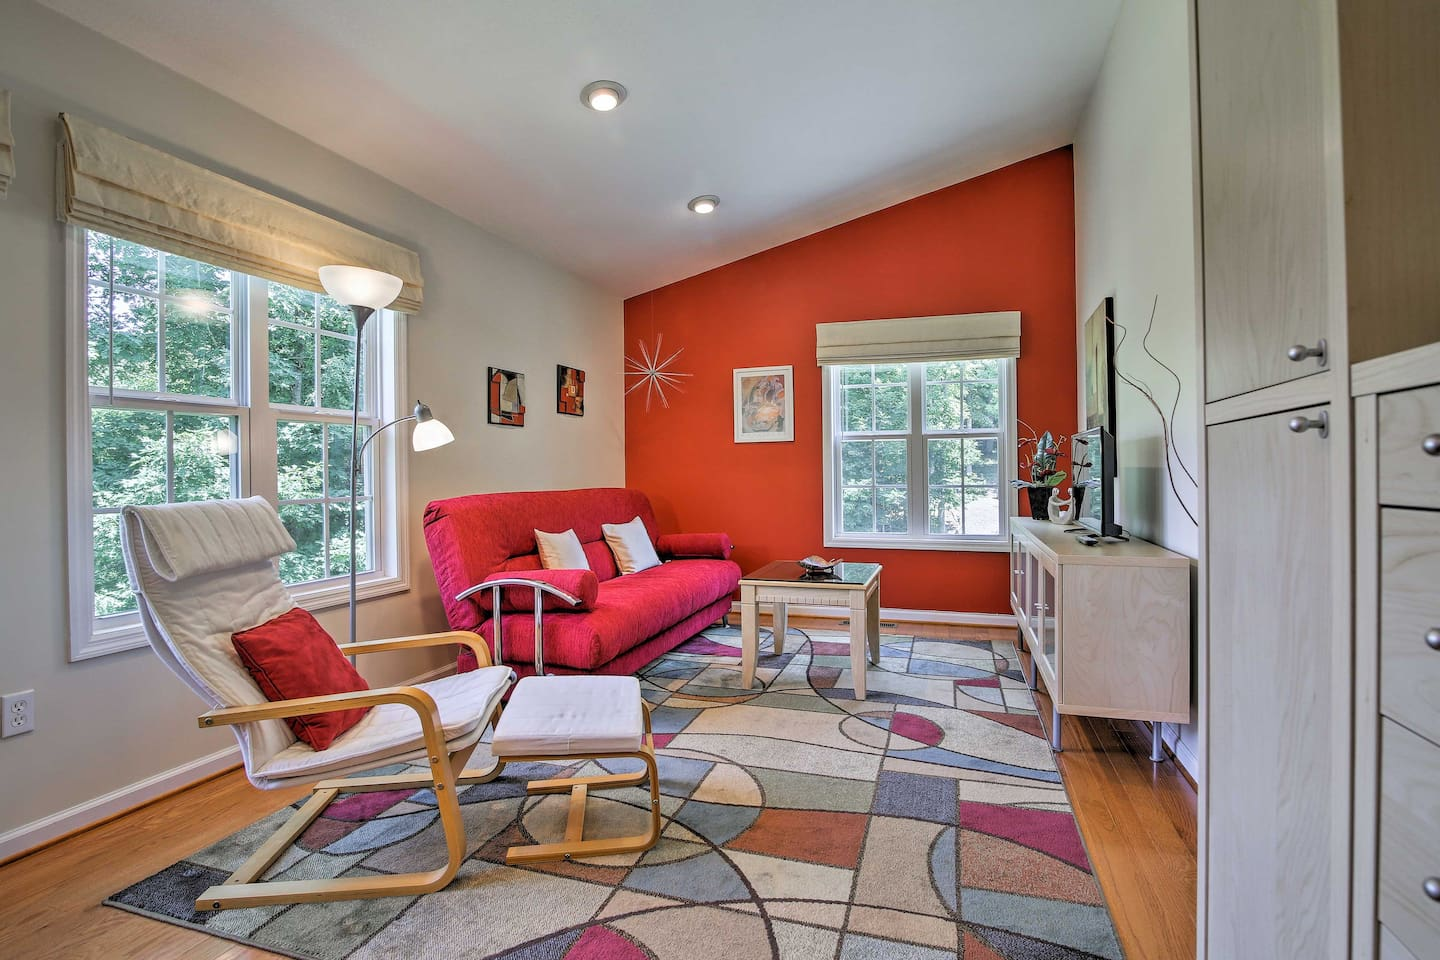 Spend a romantic weekend at this 1-bed, 1-bath vacation rental apt.